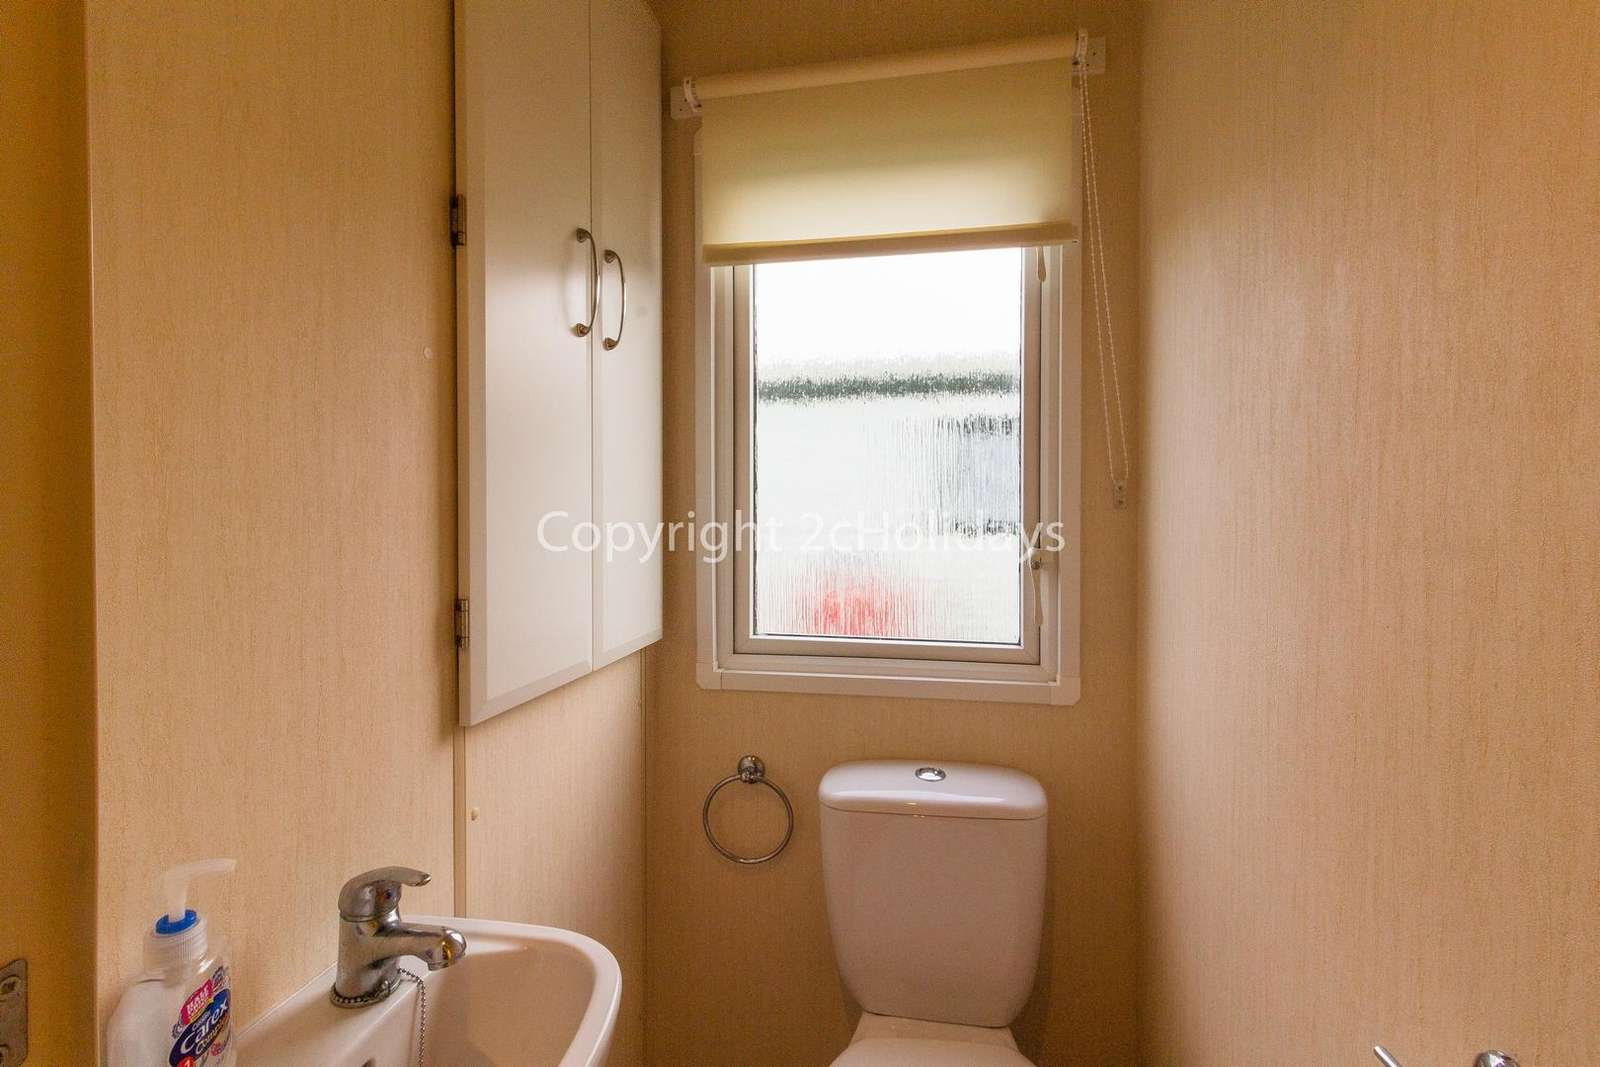 We ensure all our holiday homes are cleaned to a high standard